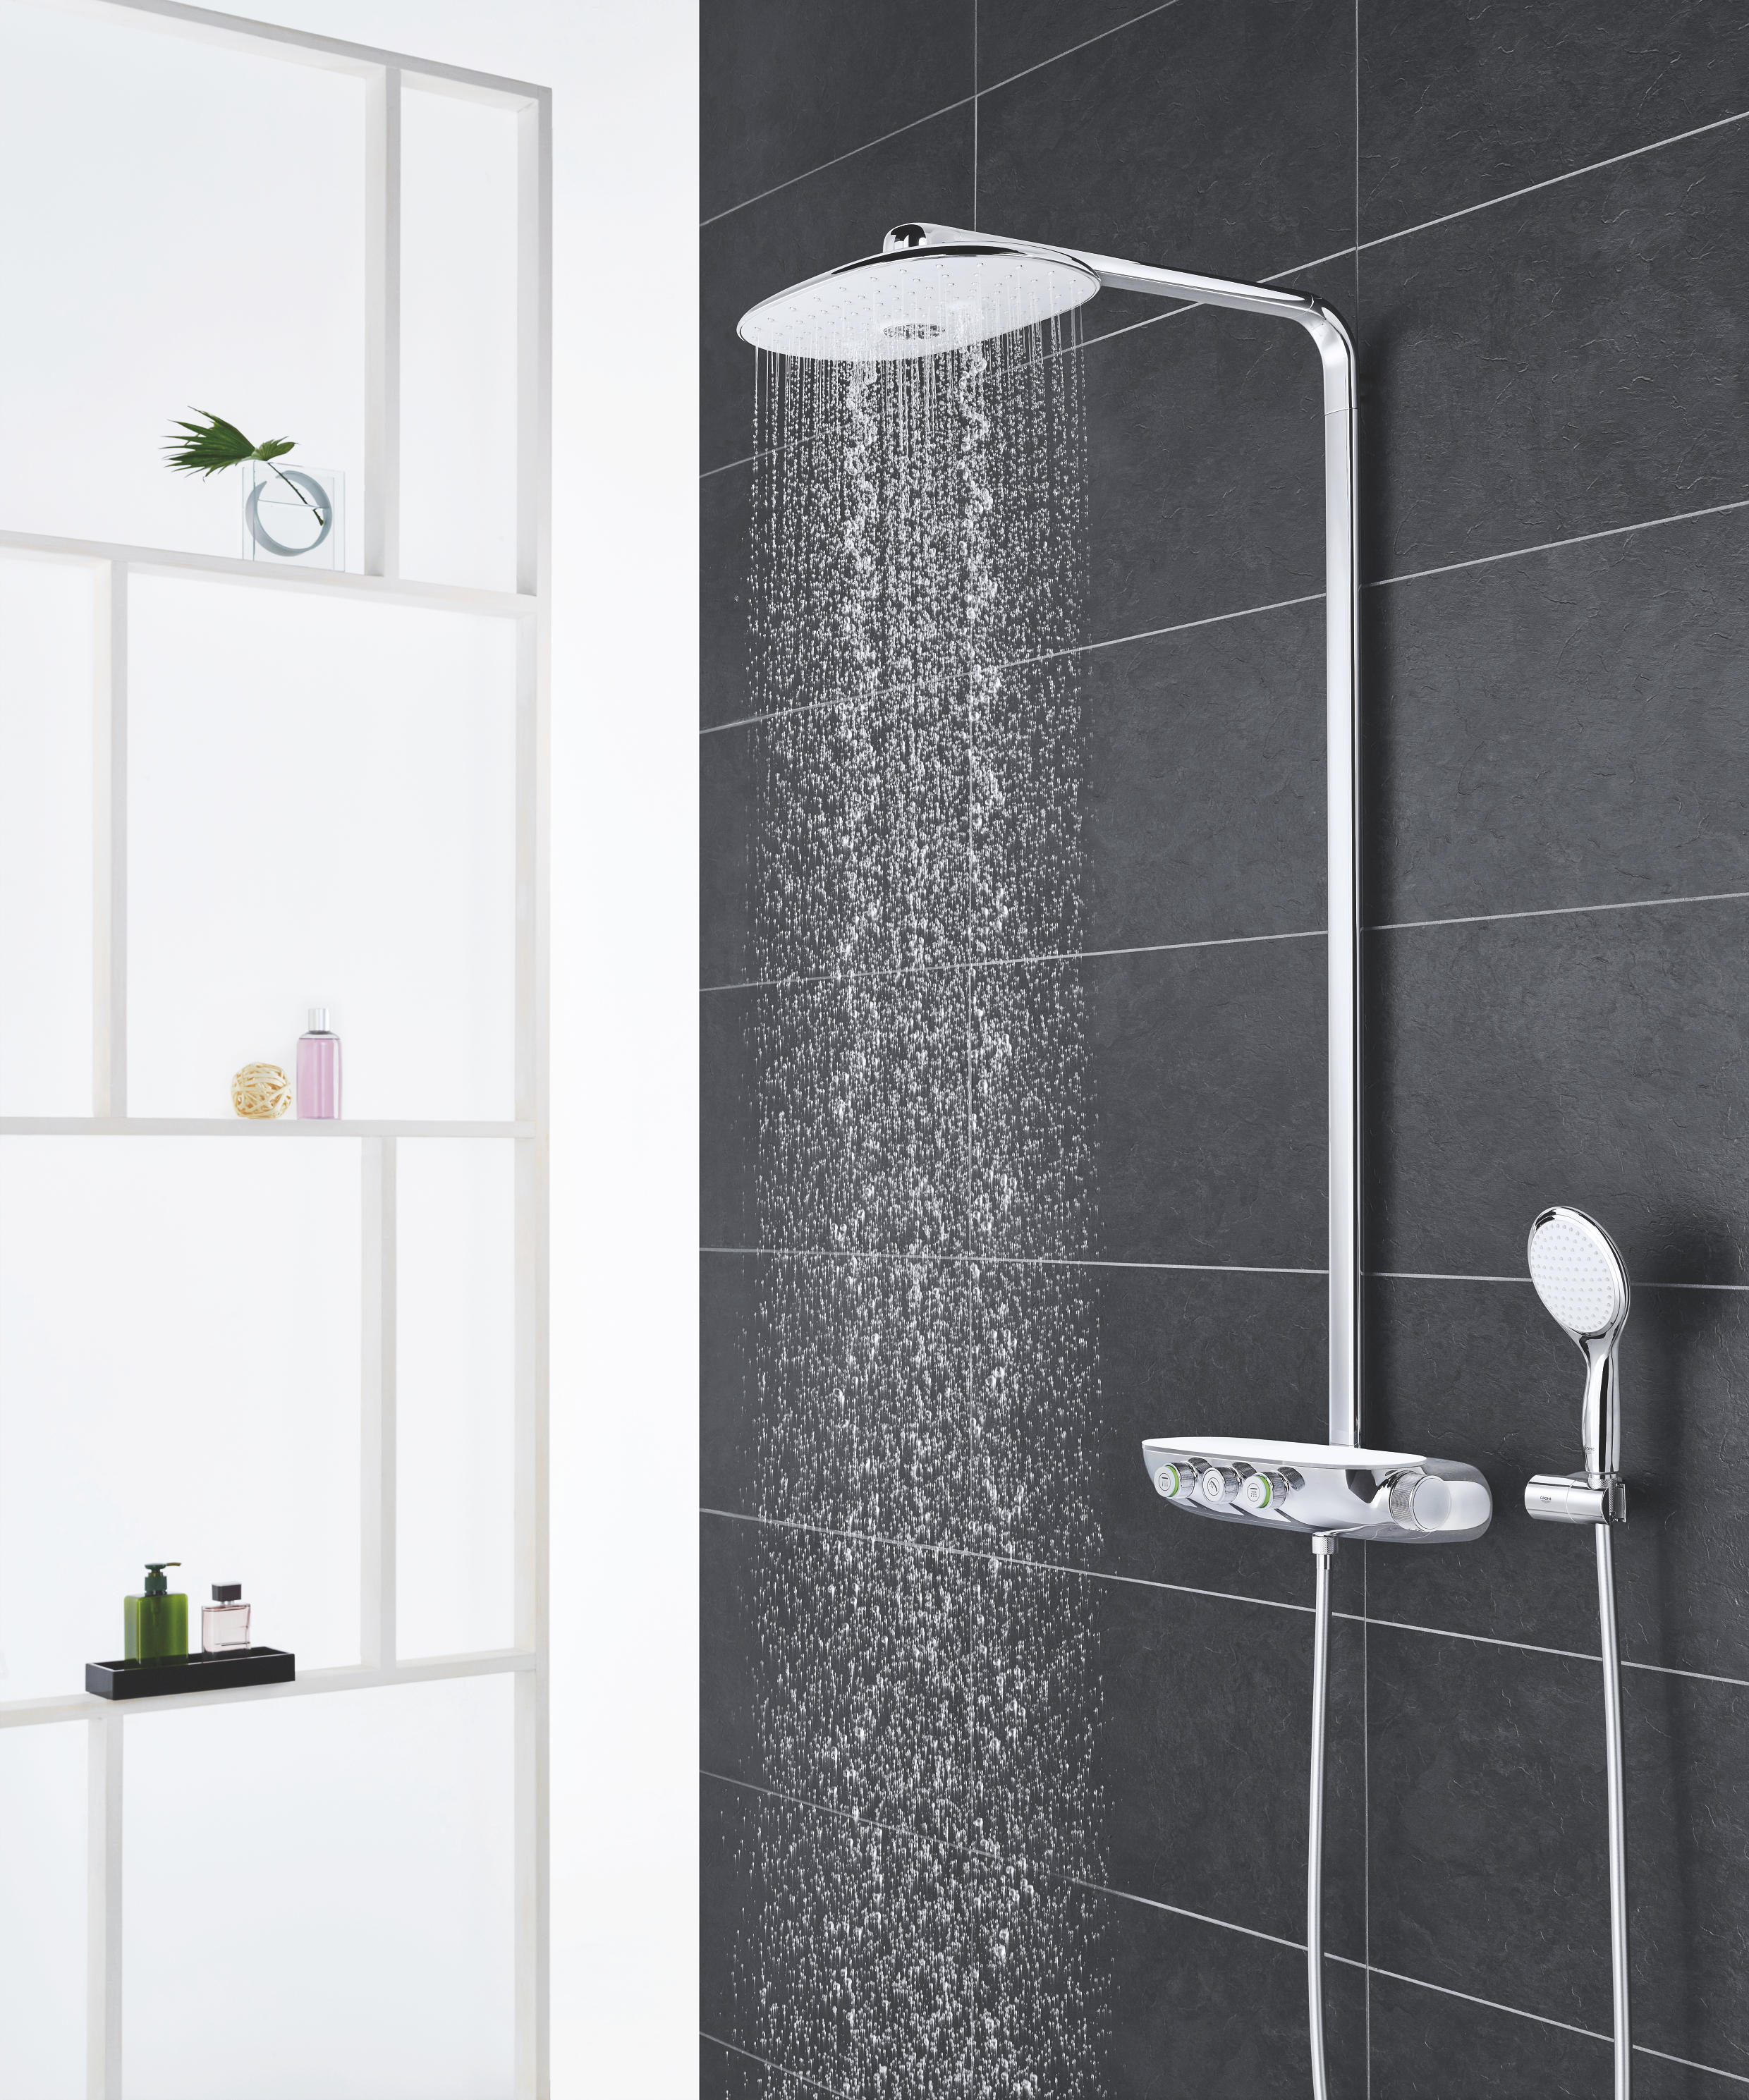 RAINSHOWER SYSTEM SMARTCONTROL 360 DUO COMBI SHOWER SYSTEM WITH ...